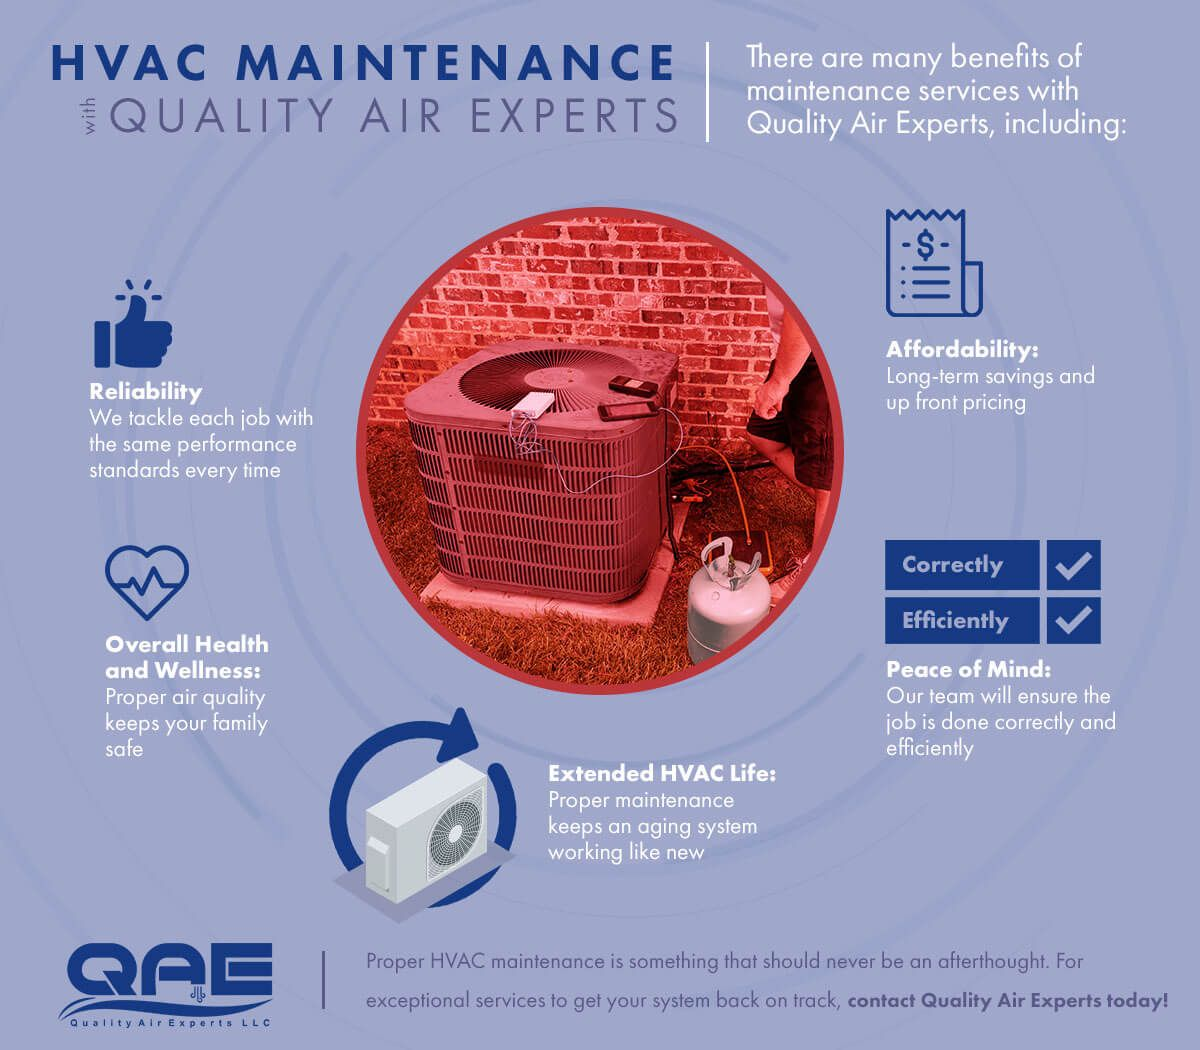 Maintenance Benefits Infographic